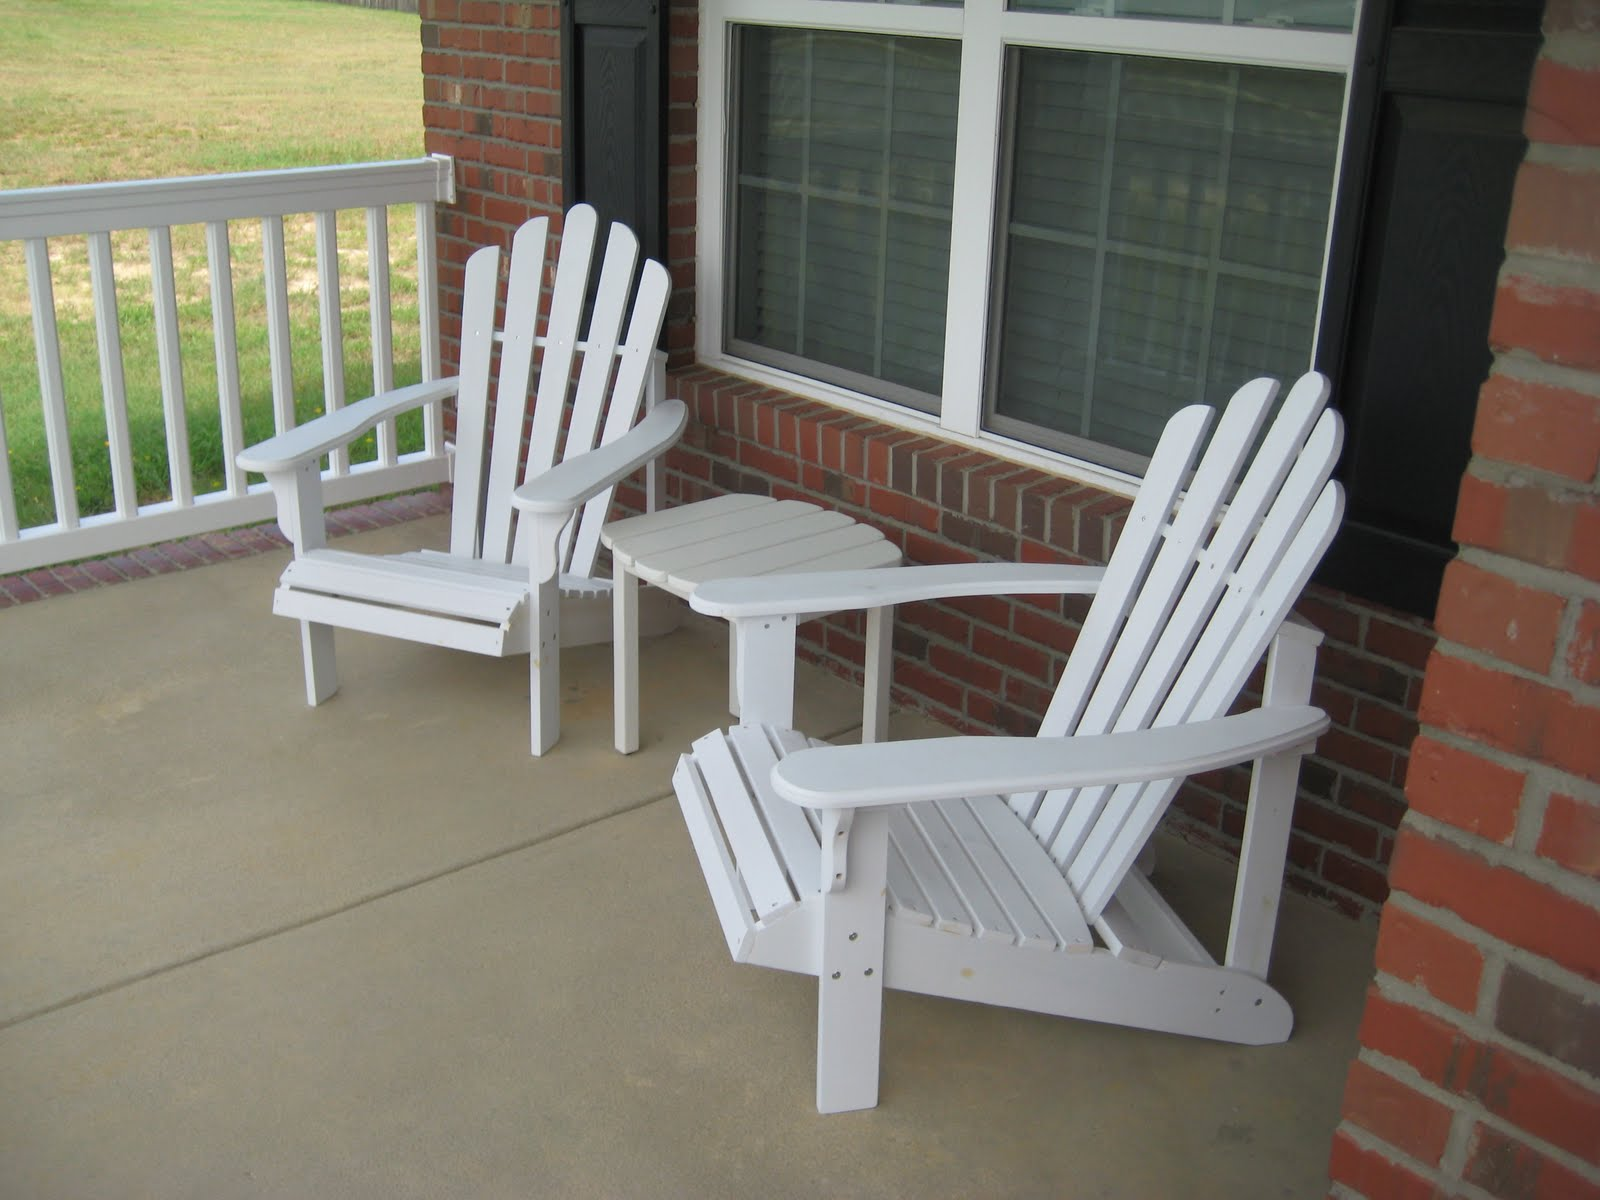 Front Porch Chairs Family Of 3 New Front Porch Furniture